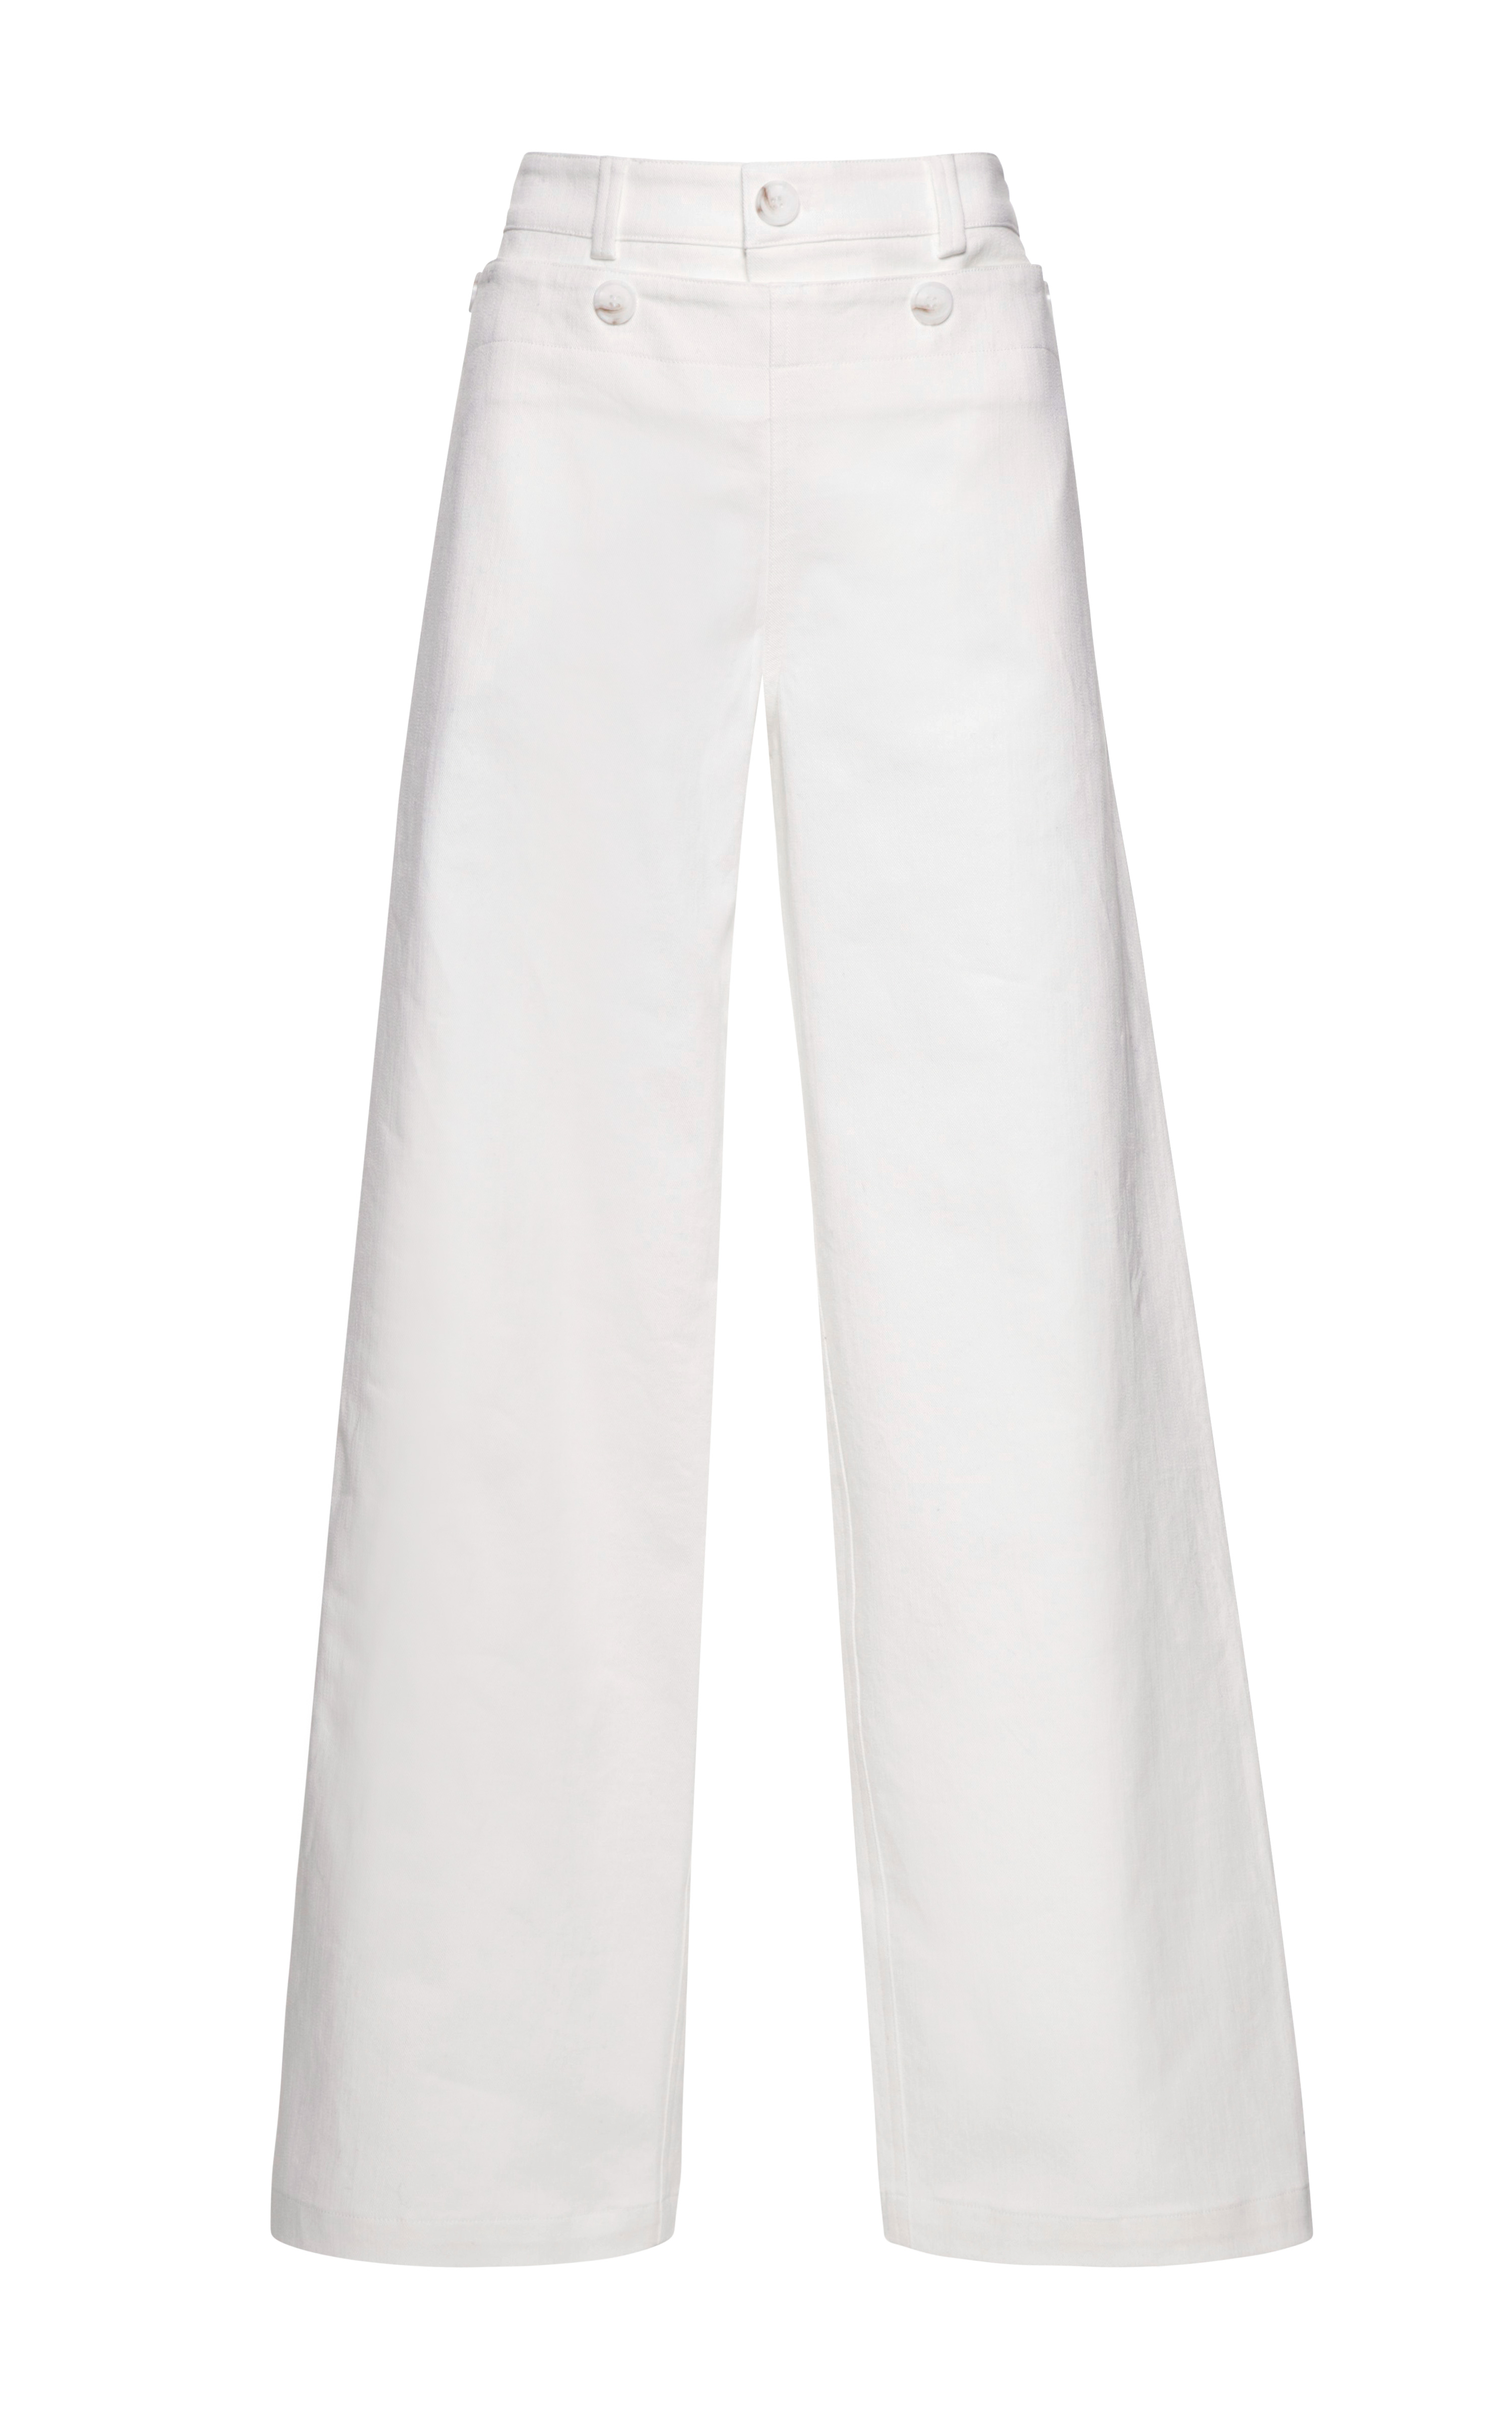 Harvey faircloth Wideleg Denim Sailor Pants in White | Lyst